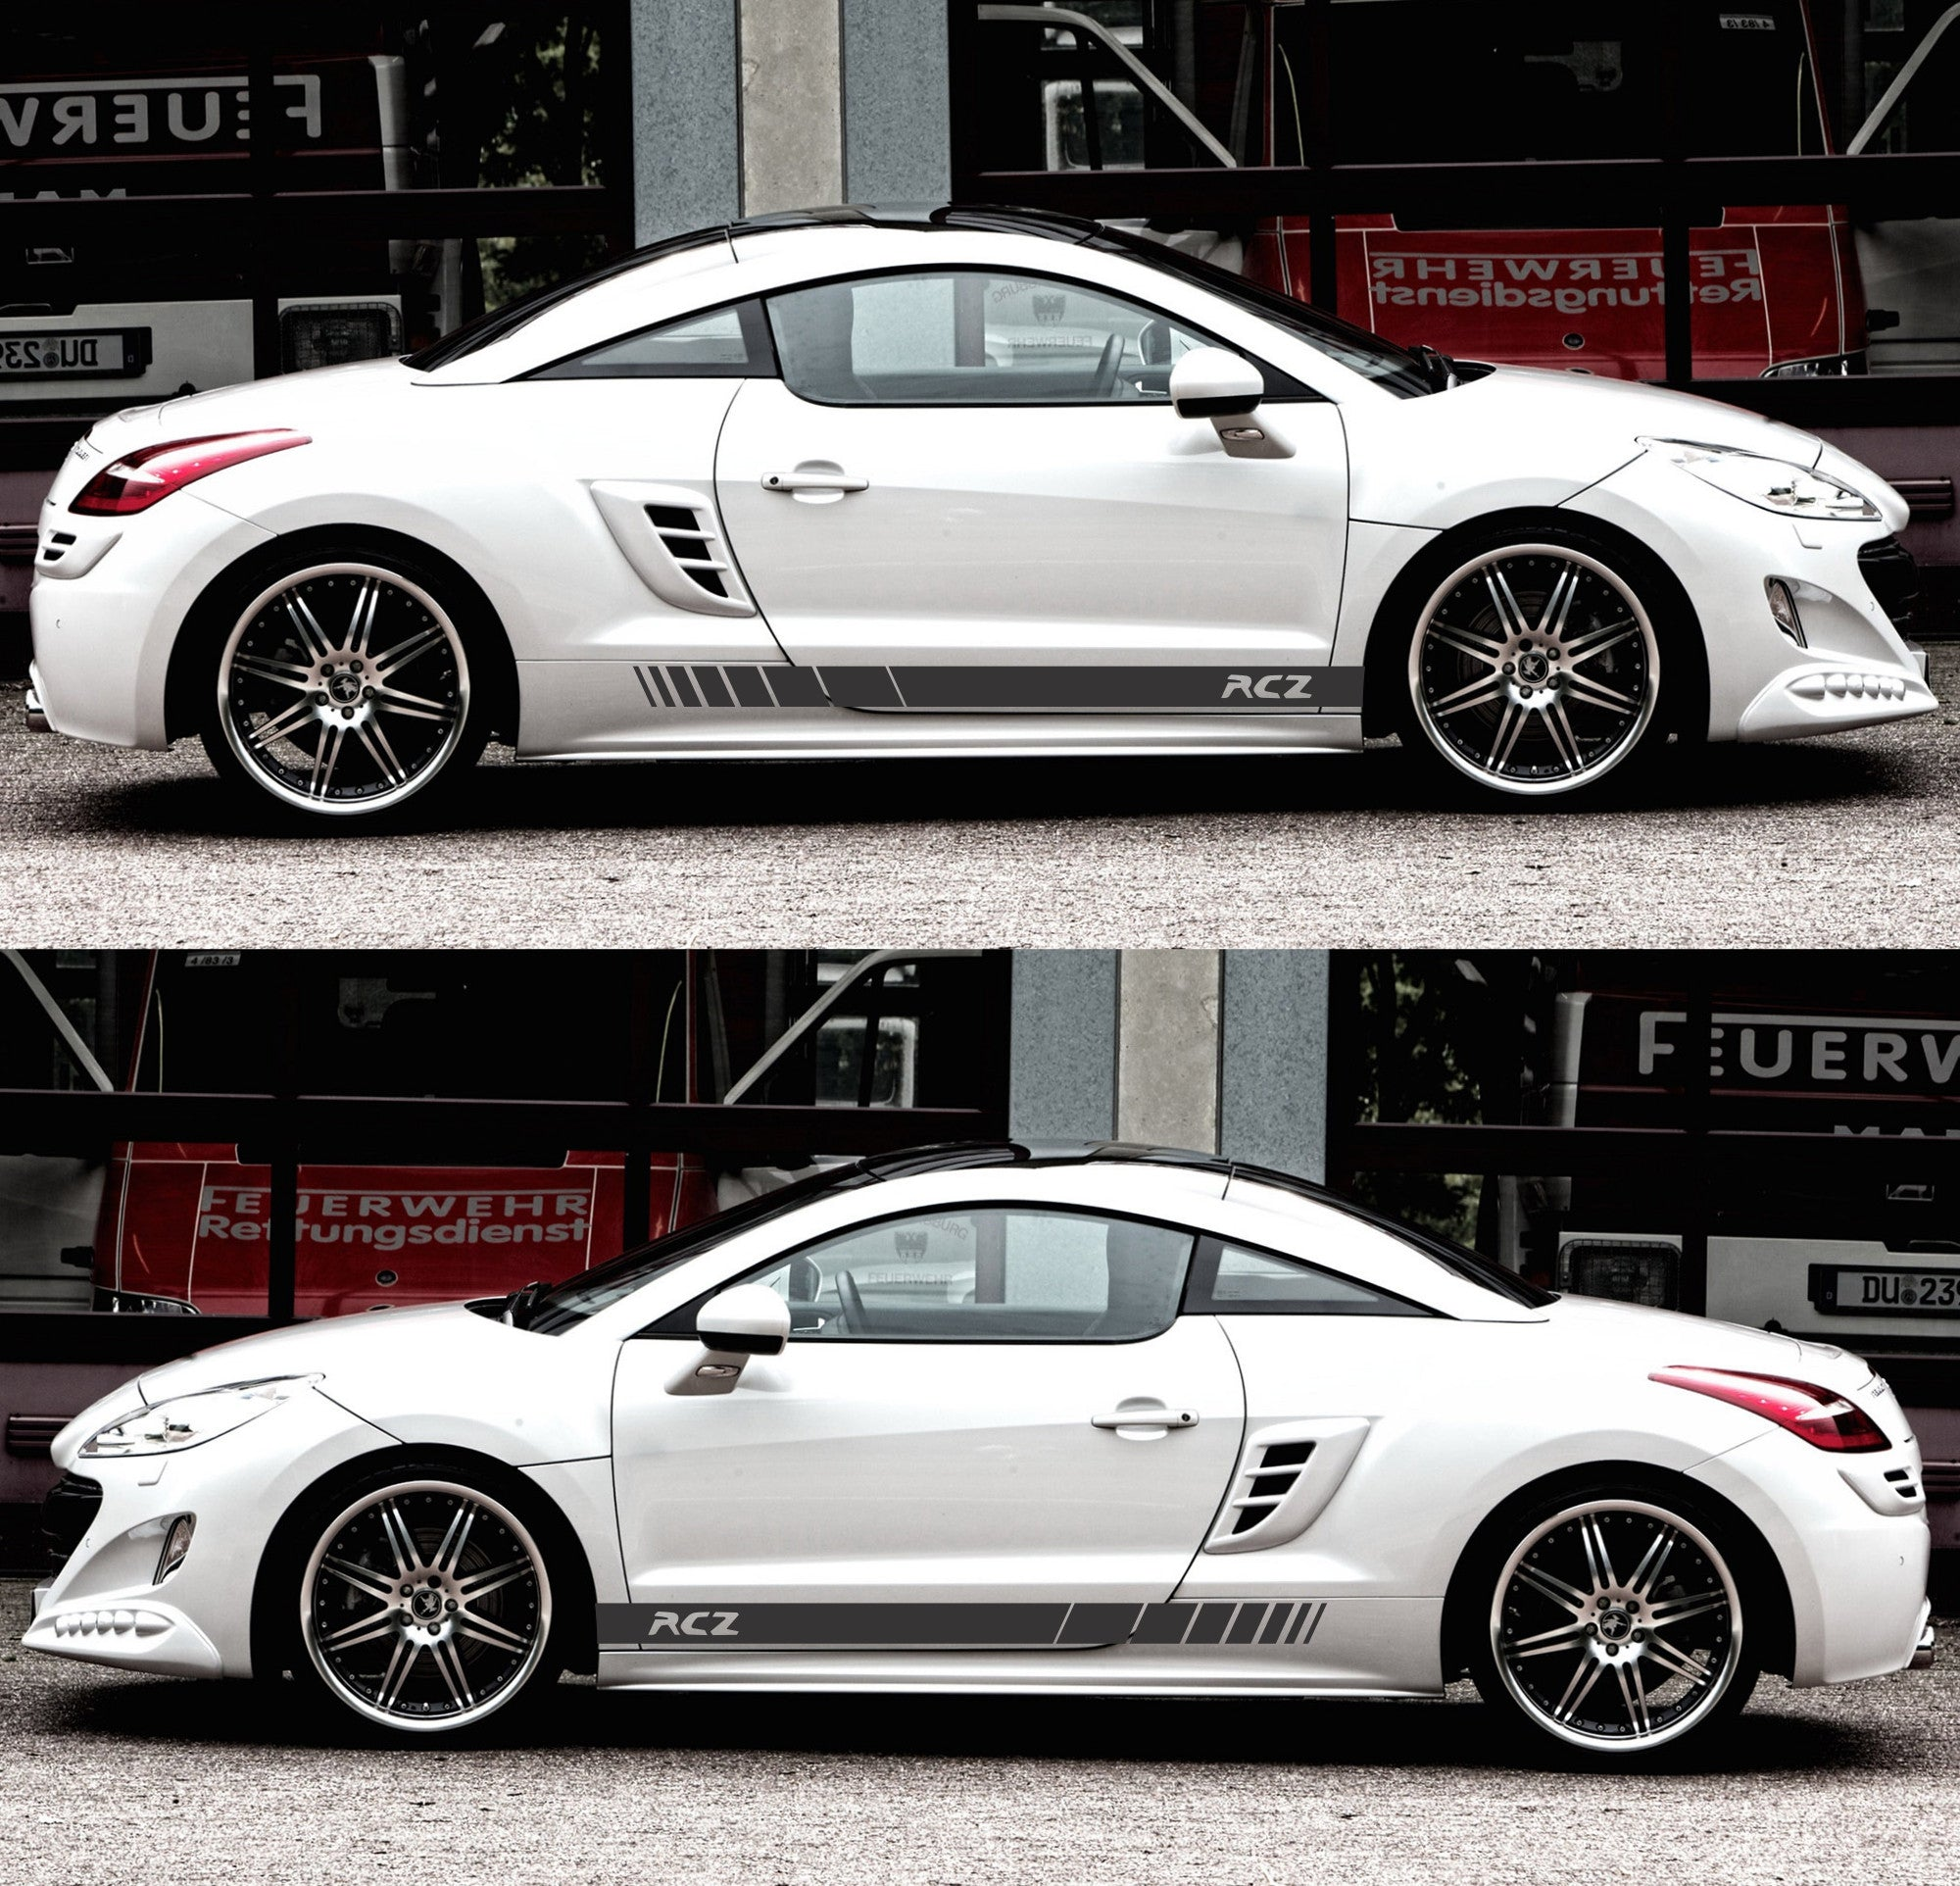 Peugeot rcz France Turbo Coupe Racing Sticker Decal v1 | Infinity270